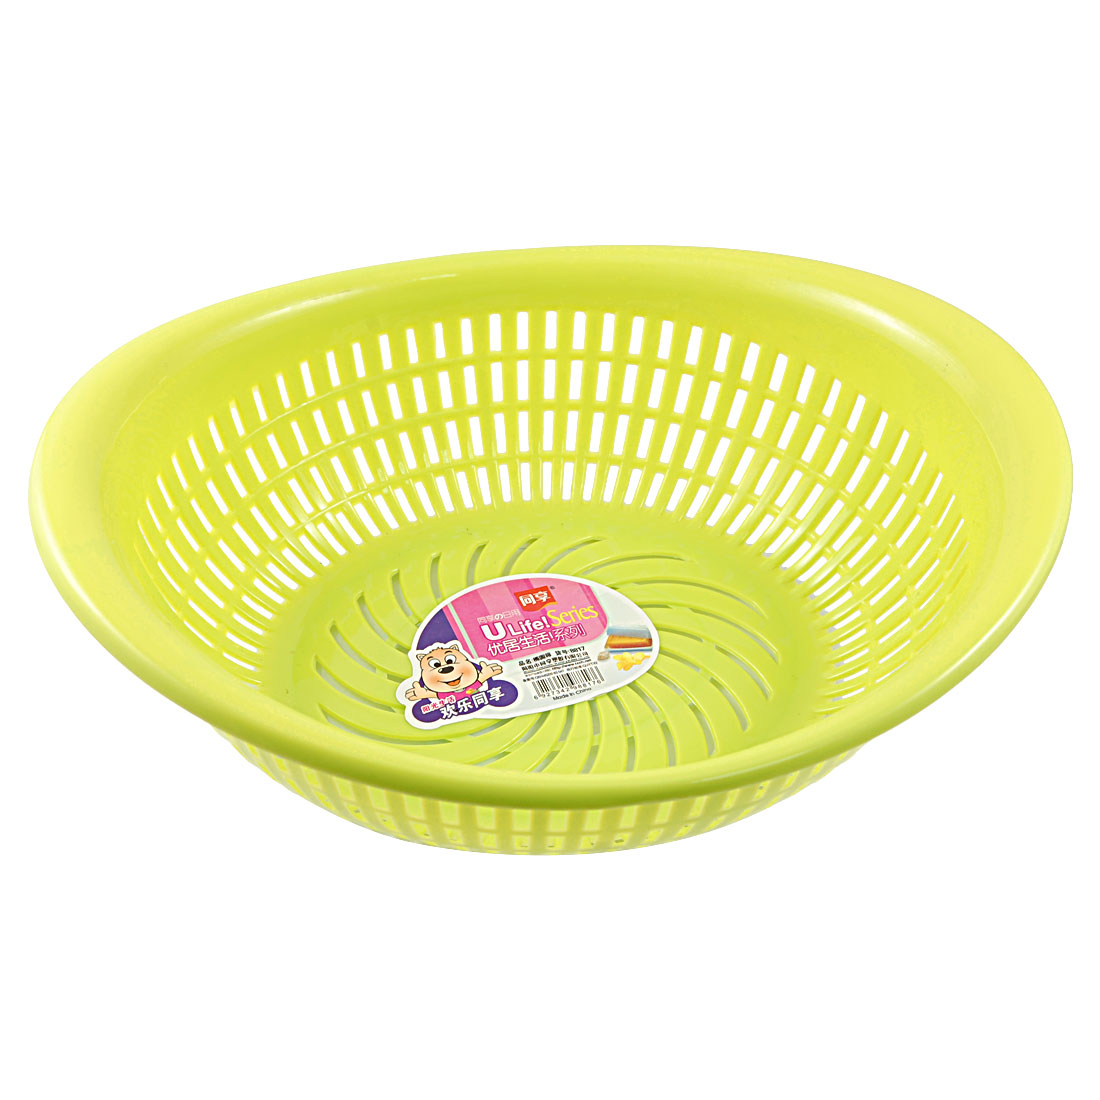 Plastic Oval Shaped Fruit Vegetable Basket Storage Holder Yellow Green